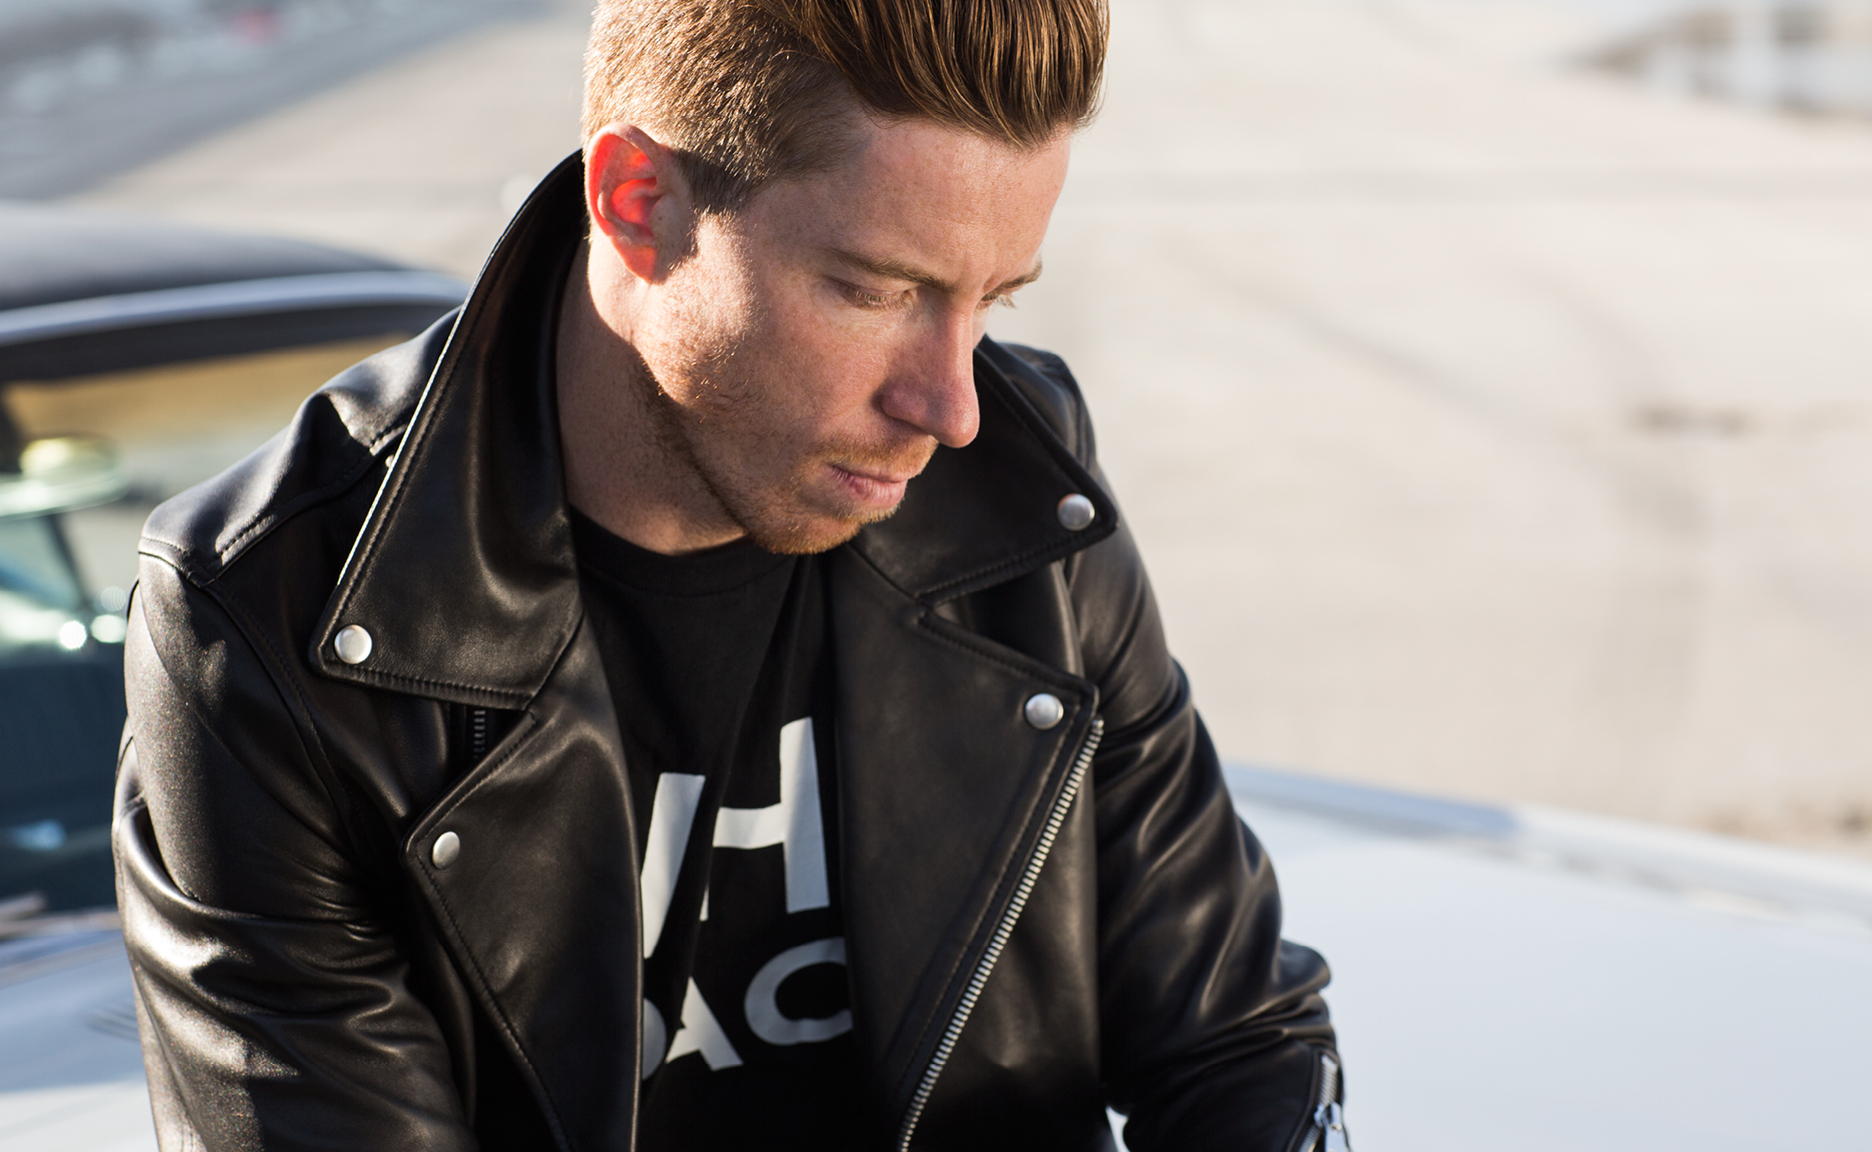 The WHT SPACE leather jacket is Shaun White favorite from the new mens clothing line.